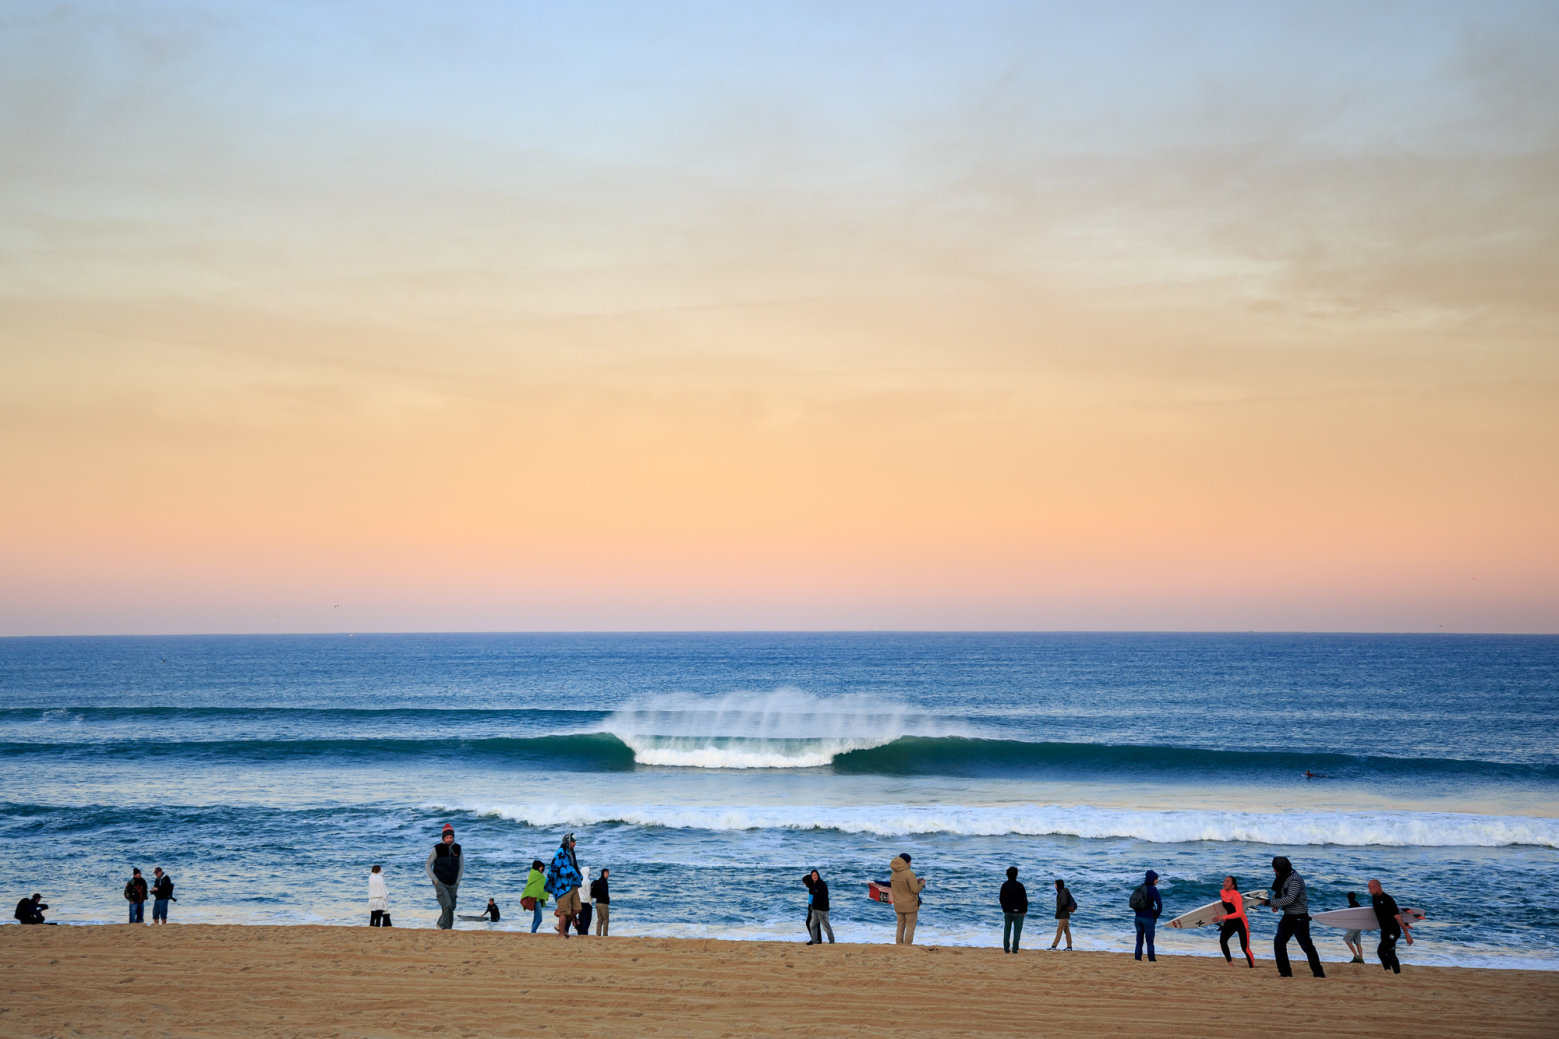 2019 Update: Surfboard Bag Fees & Travel Charges by Airline